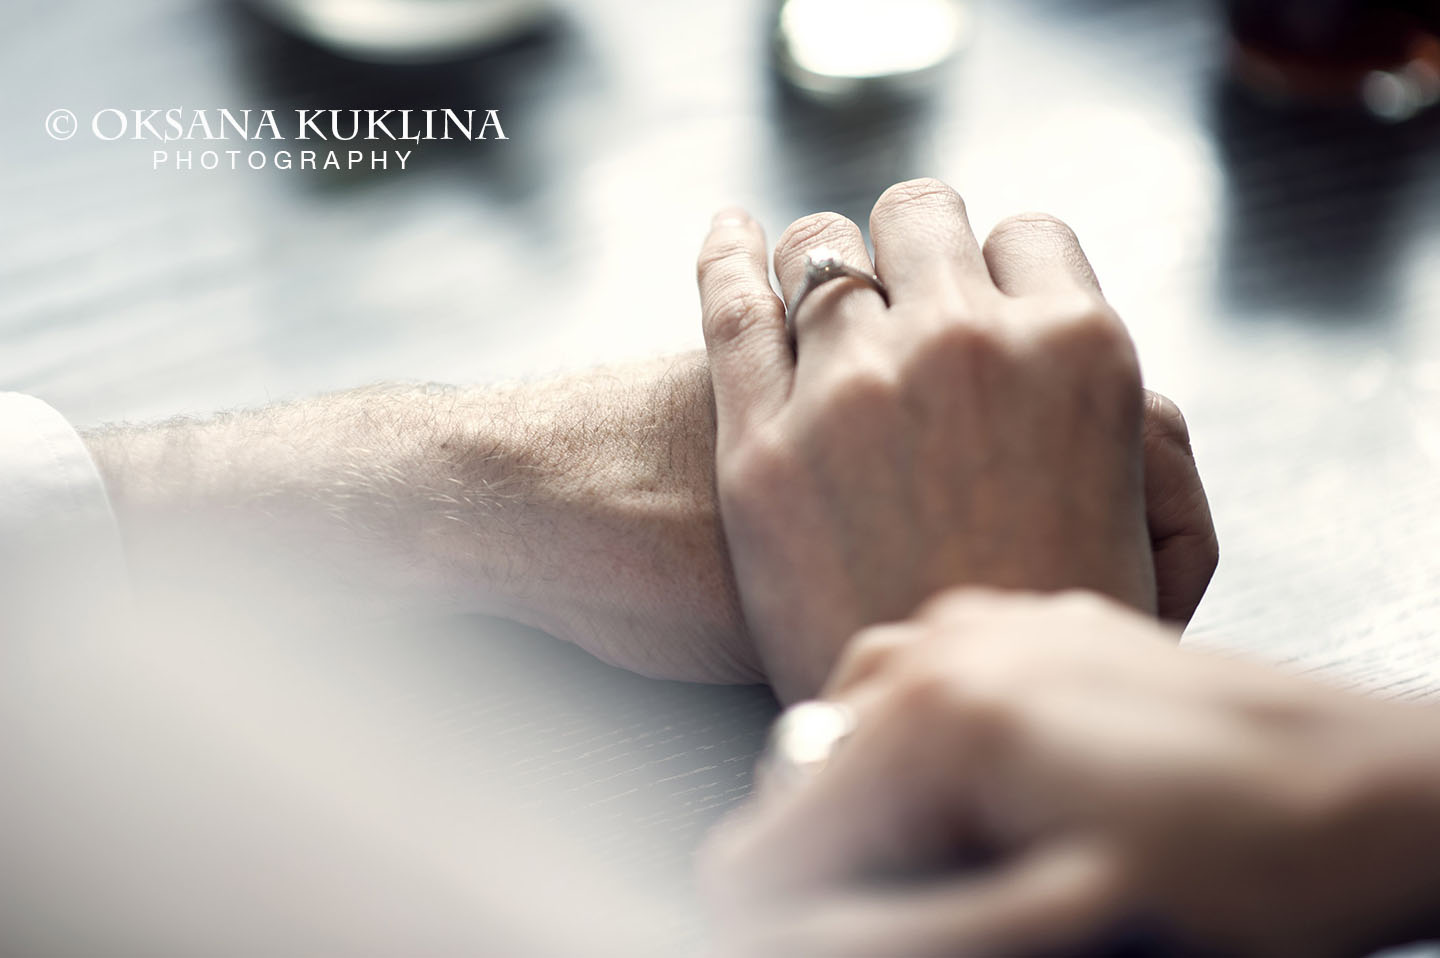 Olesya & Ian engagement shoot in the Meadows, Edinburgh by Oksana Kuklina Photography